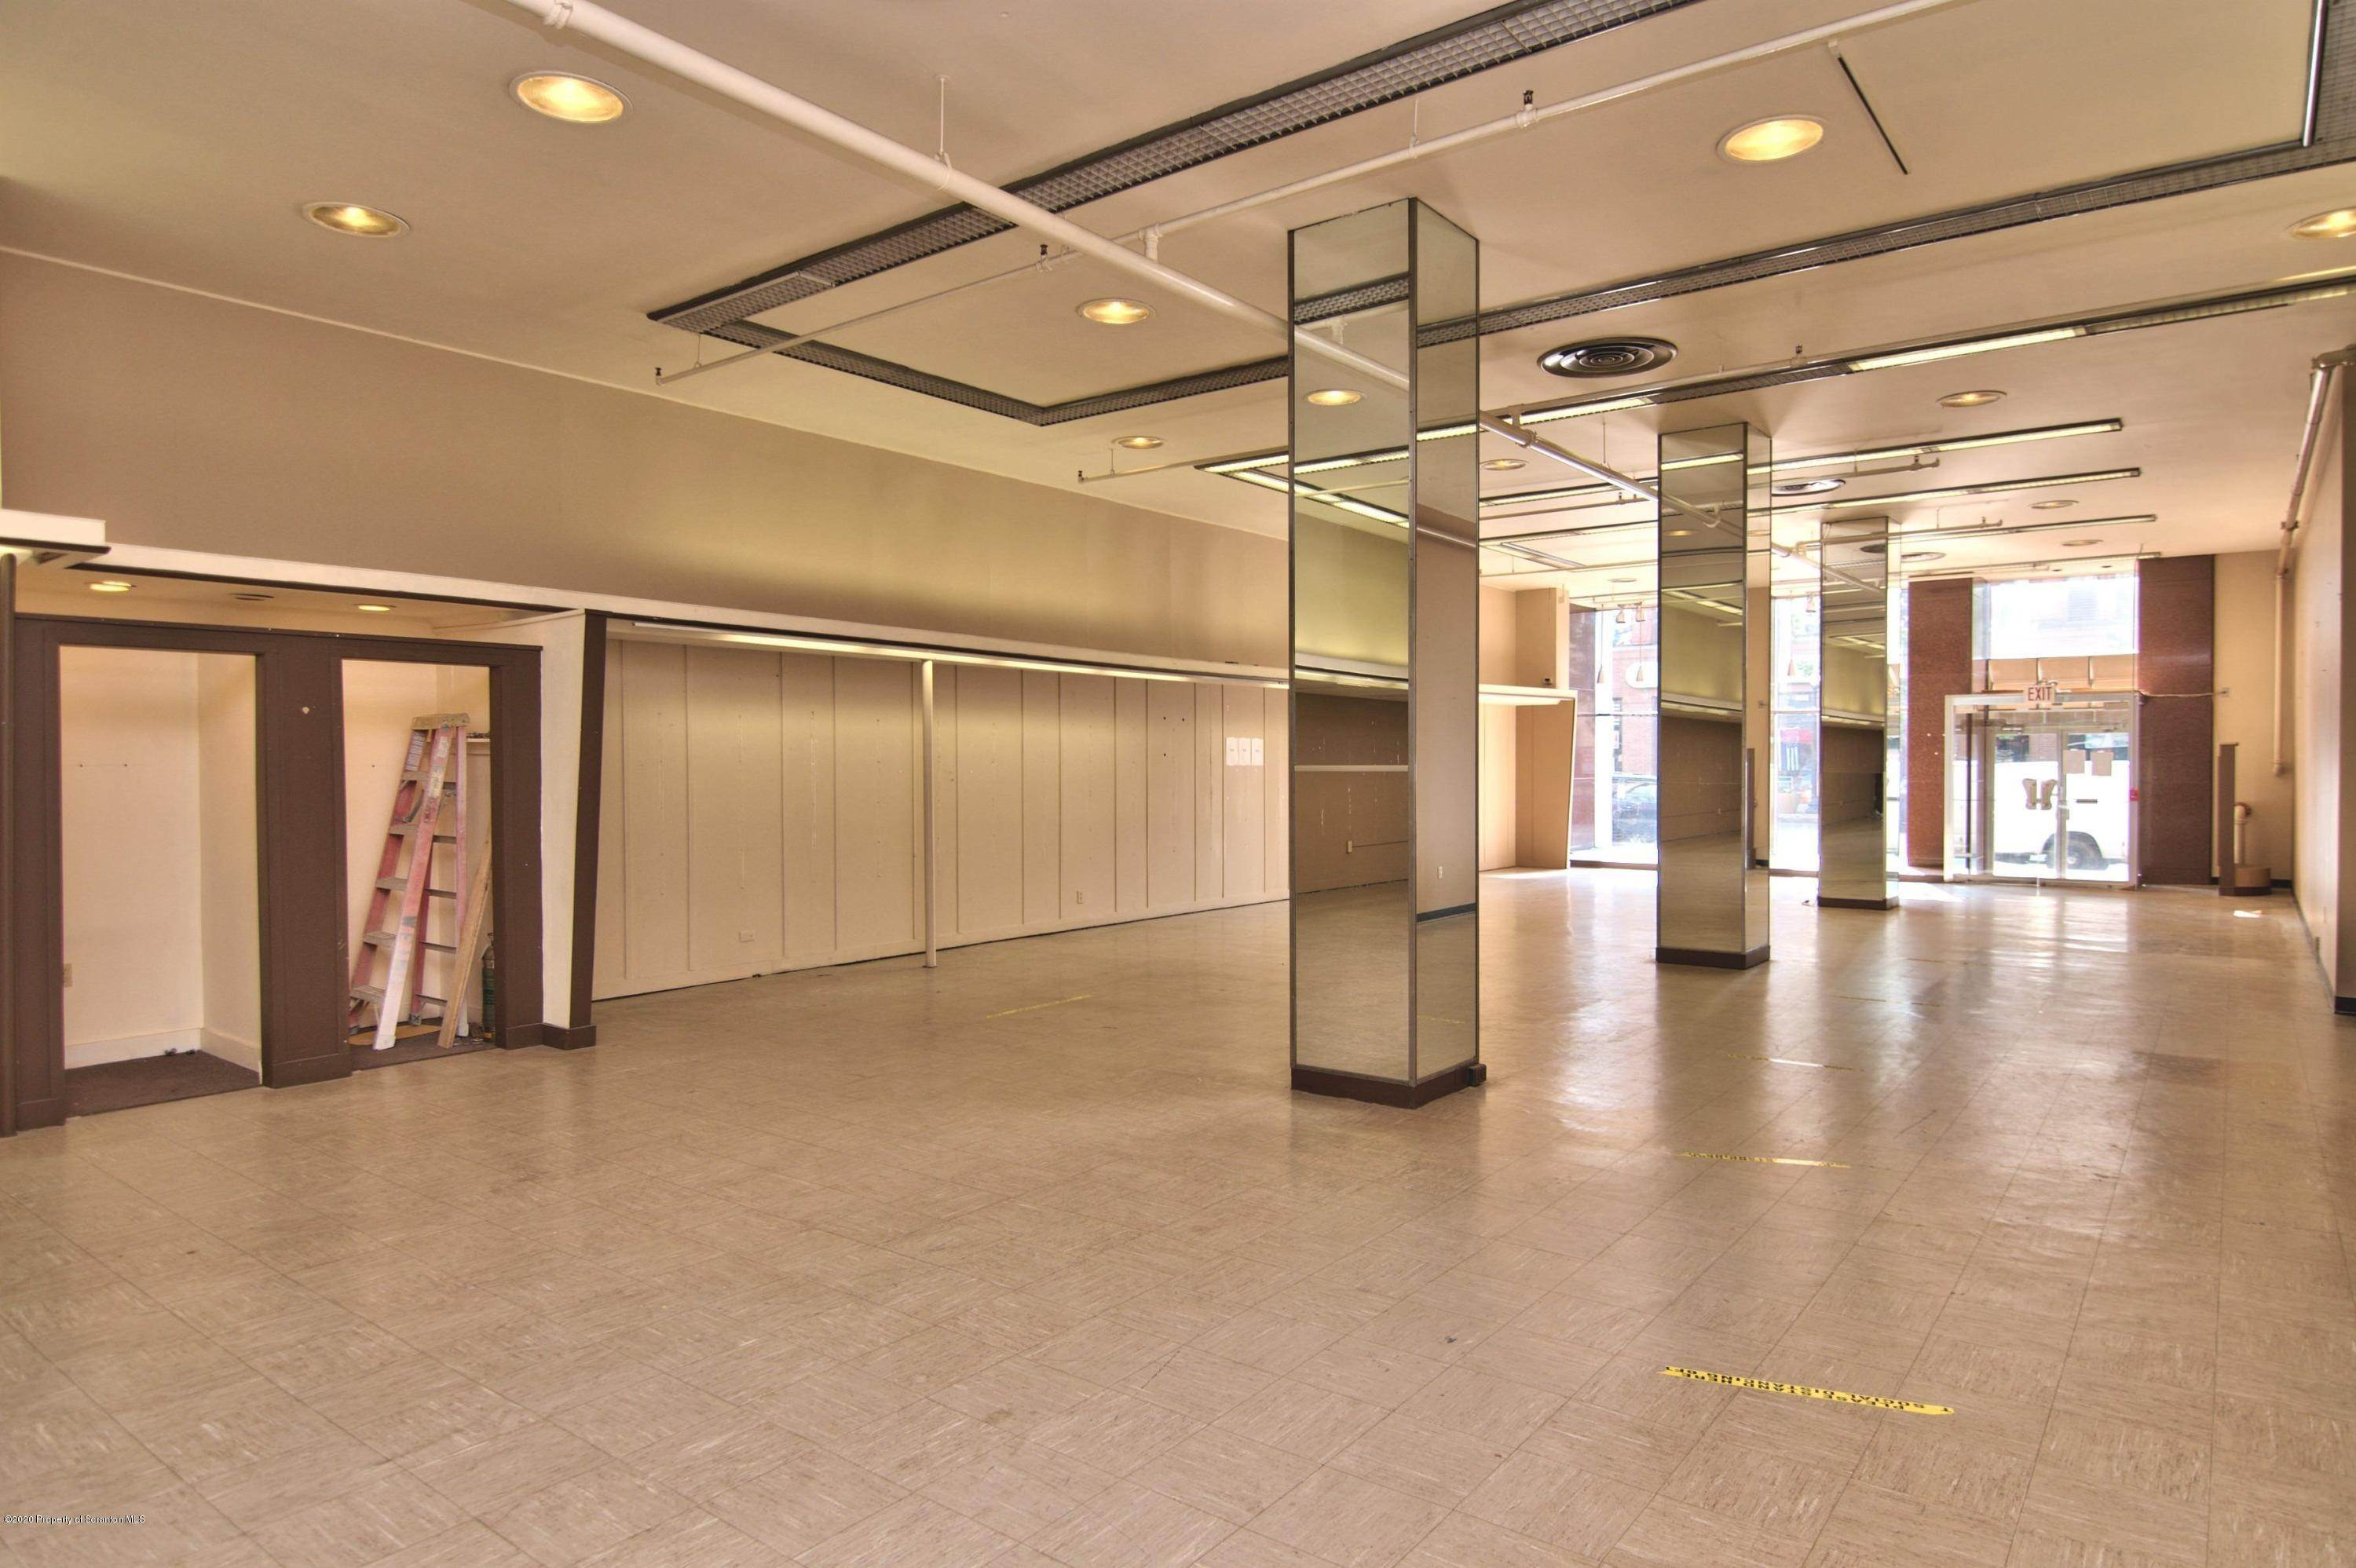 5. Commercial for Rent at 137 Wyoming Ave Scranton, Pennsylvania 18503 United States